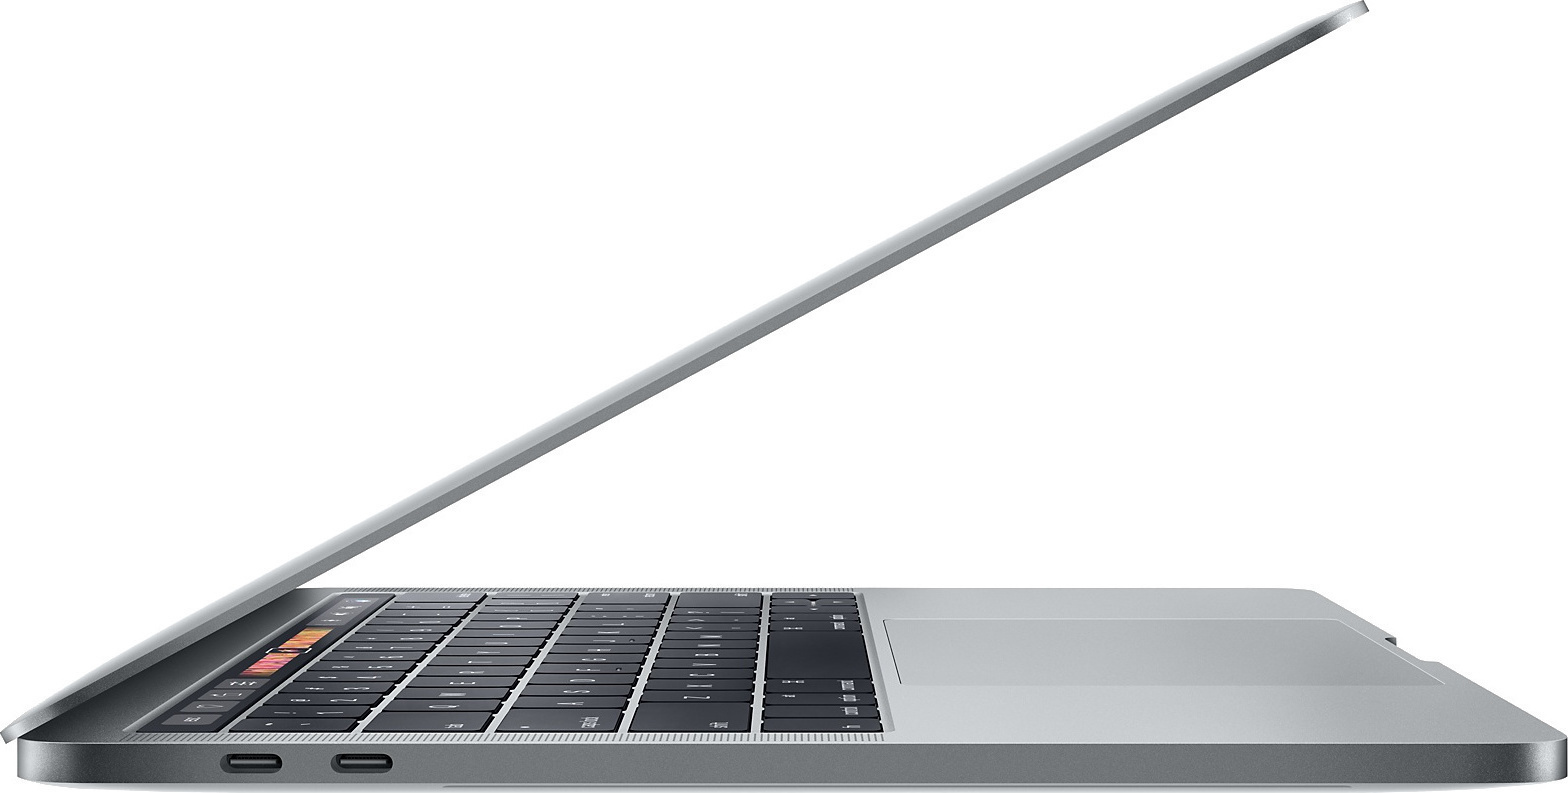 Apple Macbook Pro 133 29ghz I5 8gb 256gb With Touch Bar 2016 Retina Mlvp2 Notebook 13inch Touchbar Core Silver